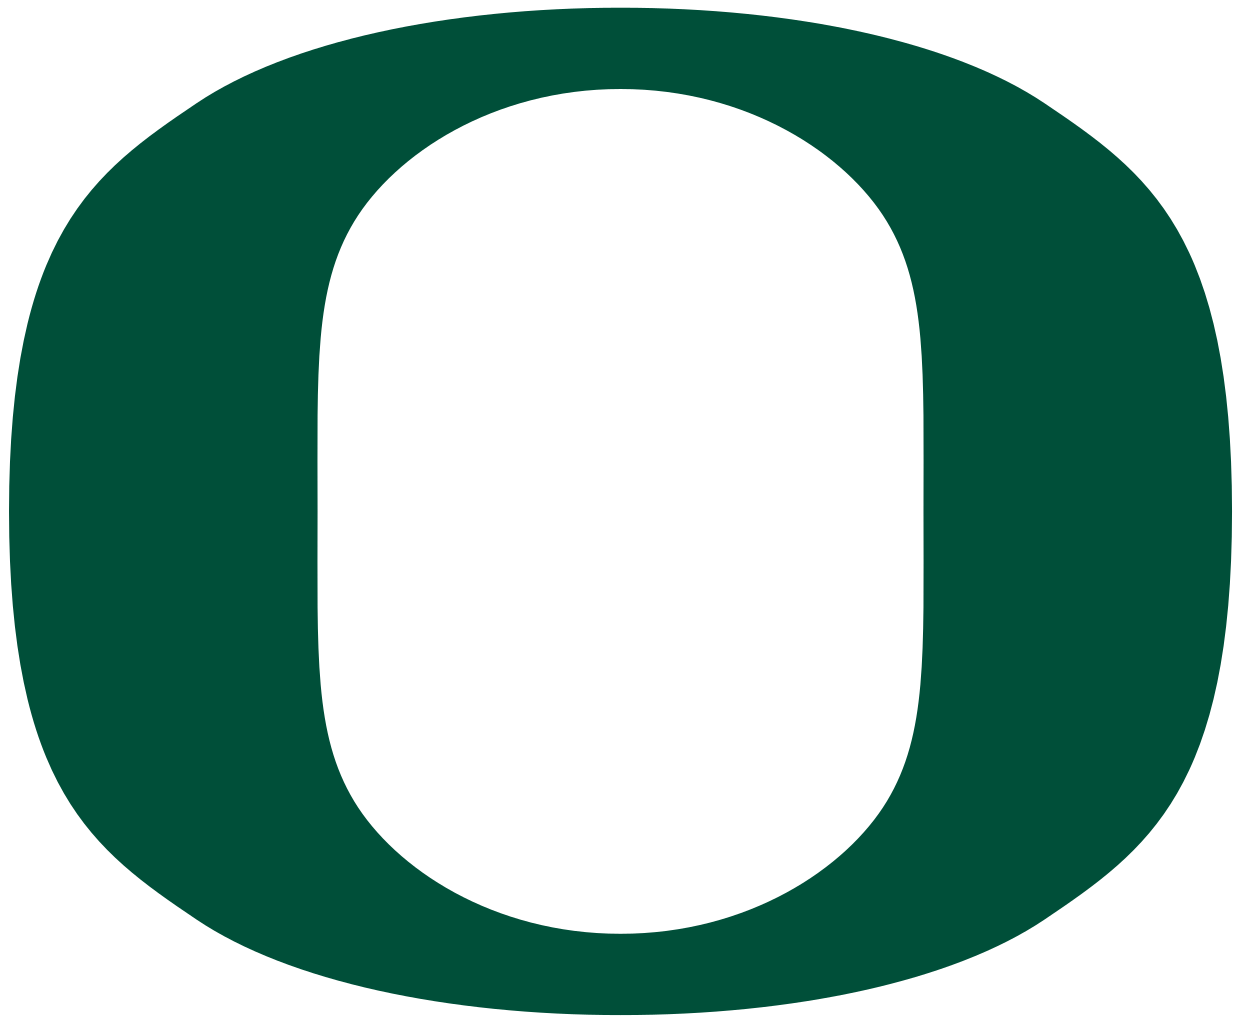 Basketball court clipart creative commons png free File:Oregon Ducks logo.svg - Wikipedia png free